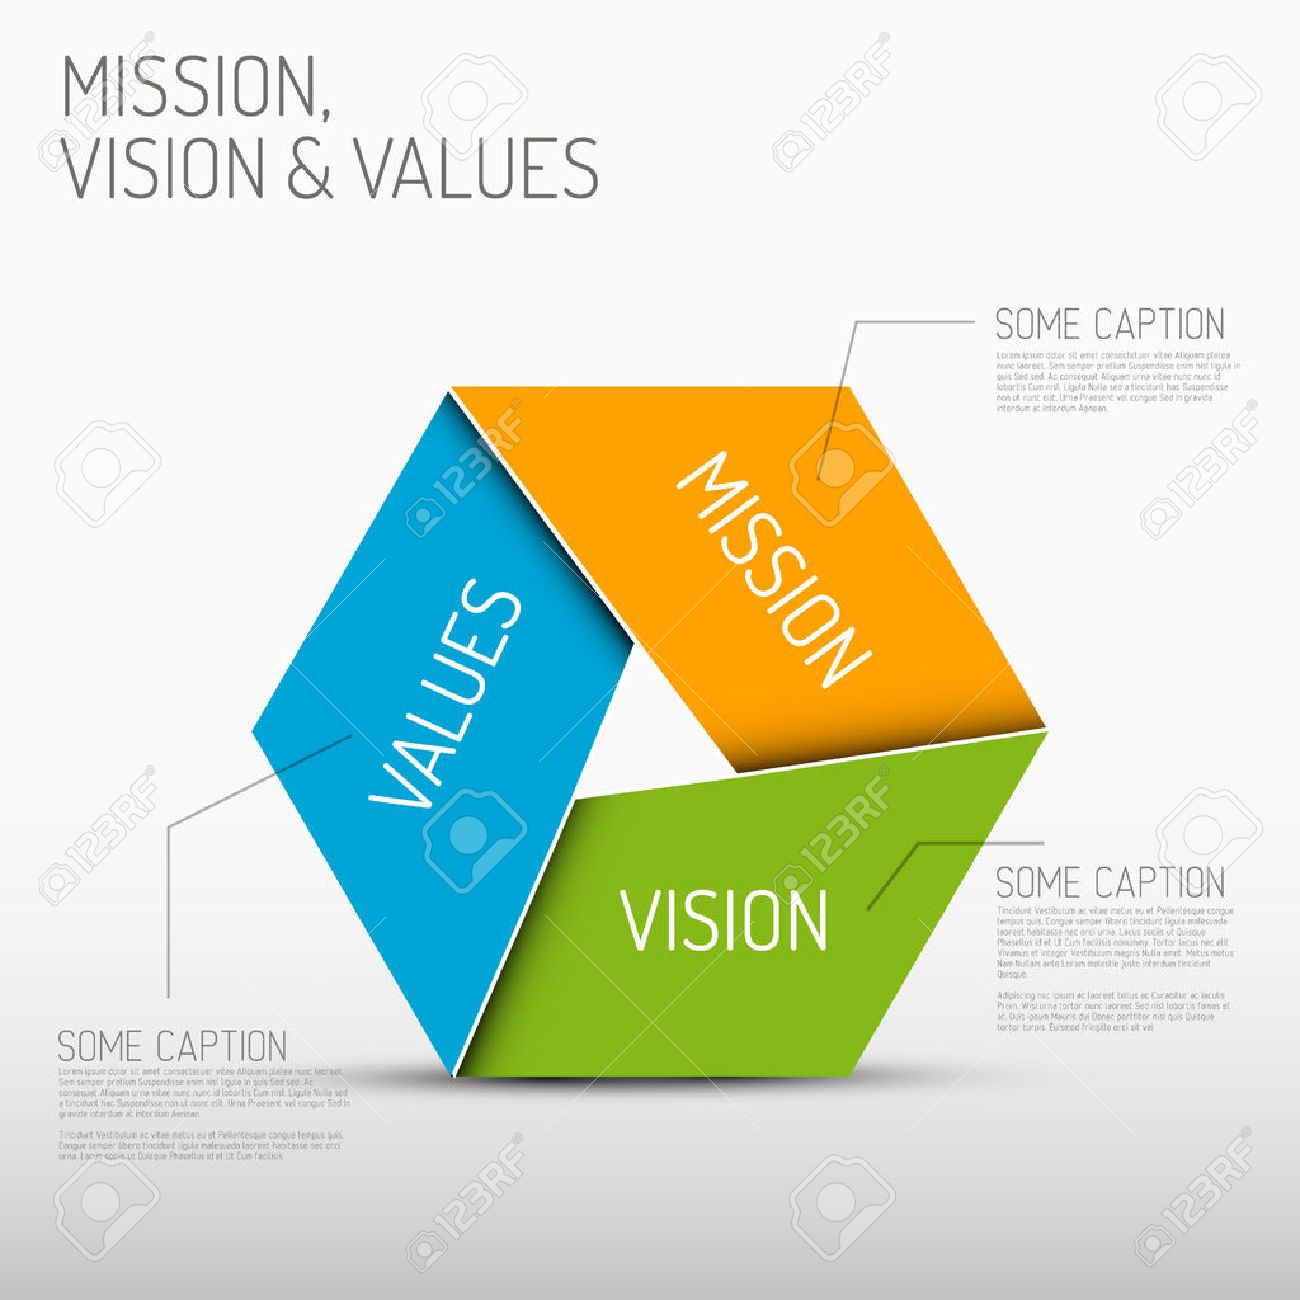 mission, vision and values diagram schema infographic stock vector -  36054780